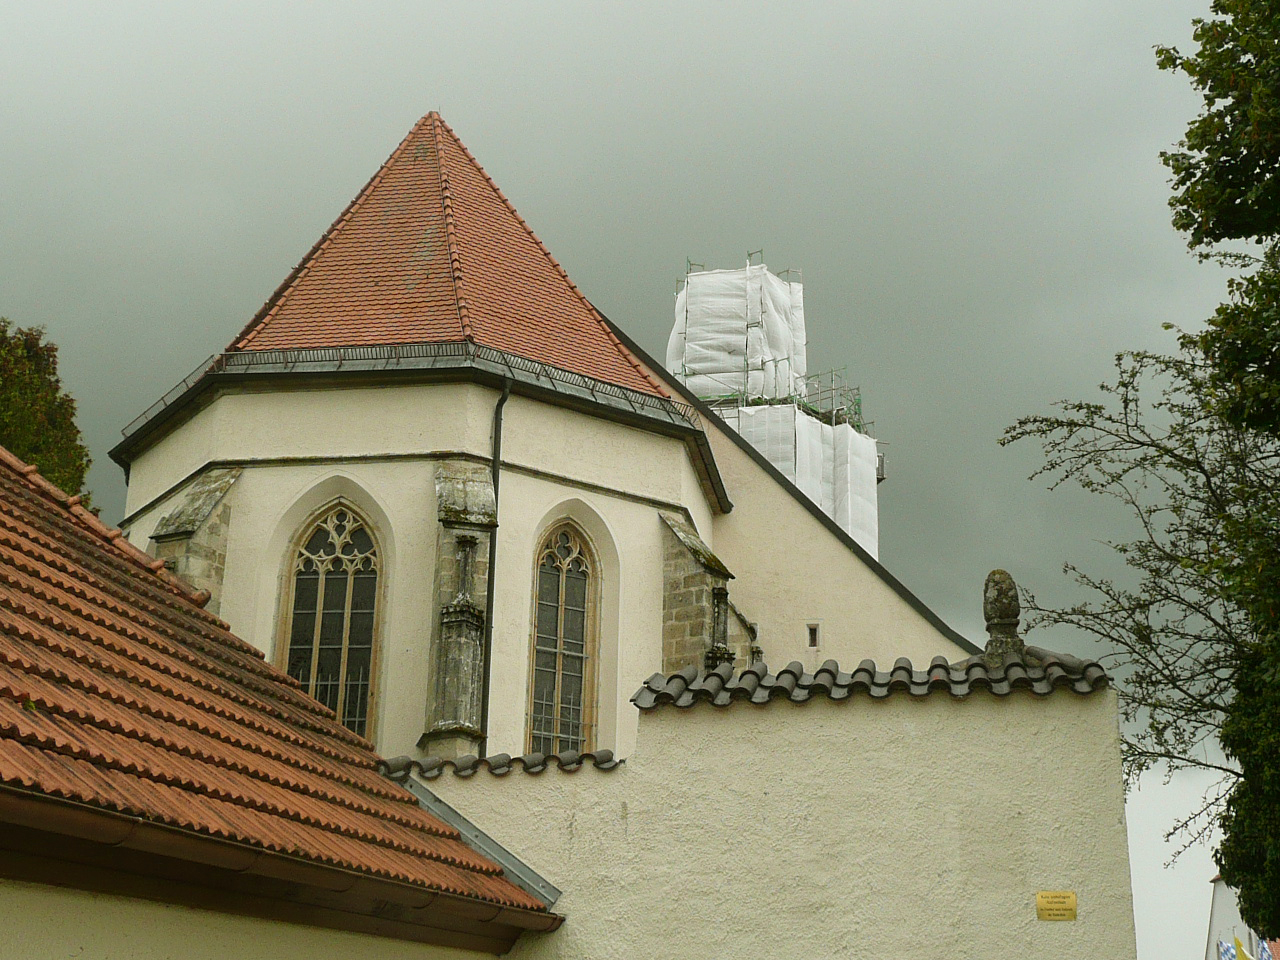 Bogenberg renovation2012 40577.jpg English: Wallfahrtskirche Mariä Himmelfahrt in renovation (Bogenberg) Date 12 September 2012, 15:39:30